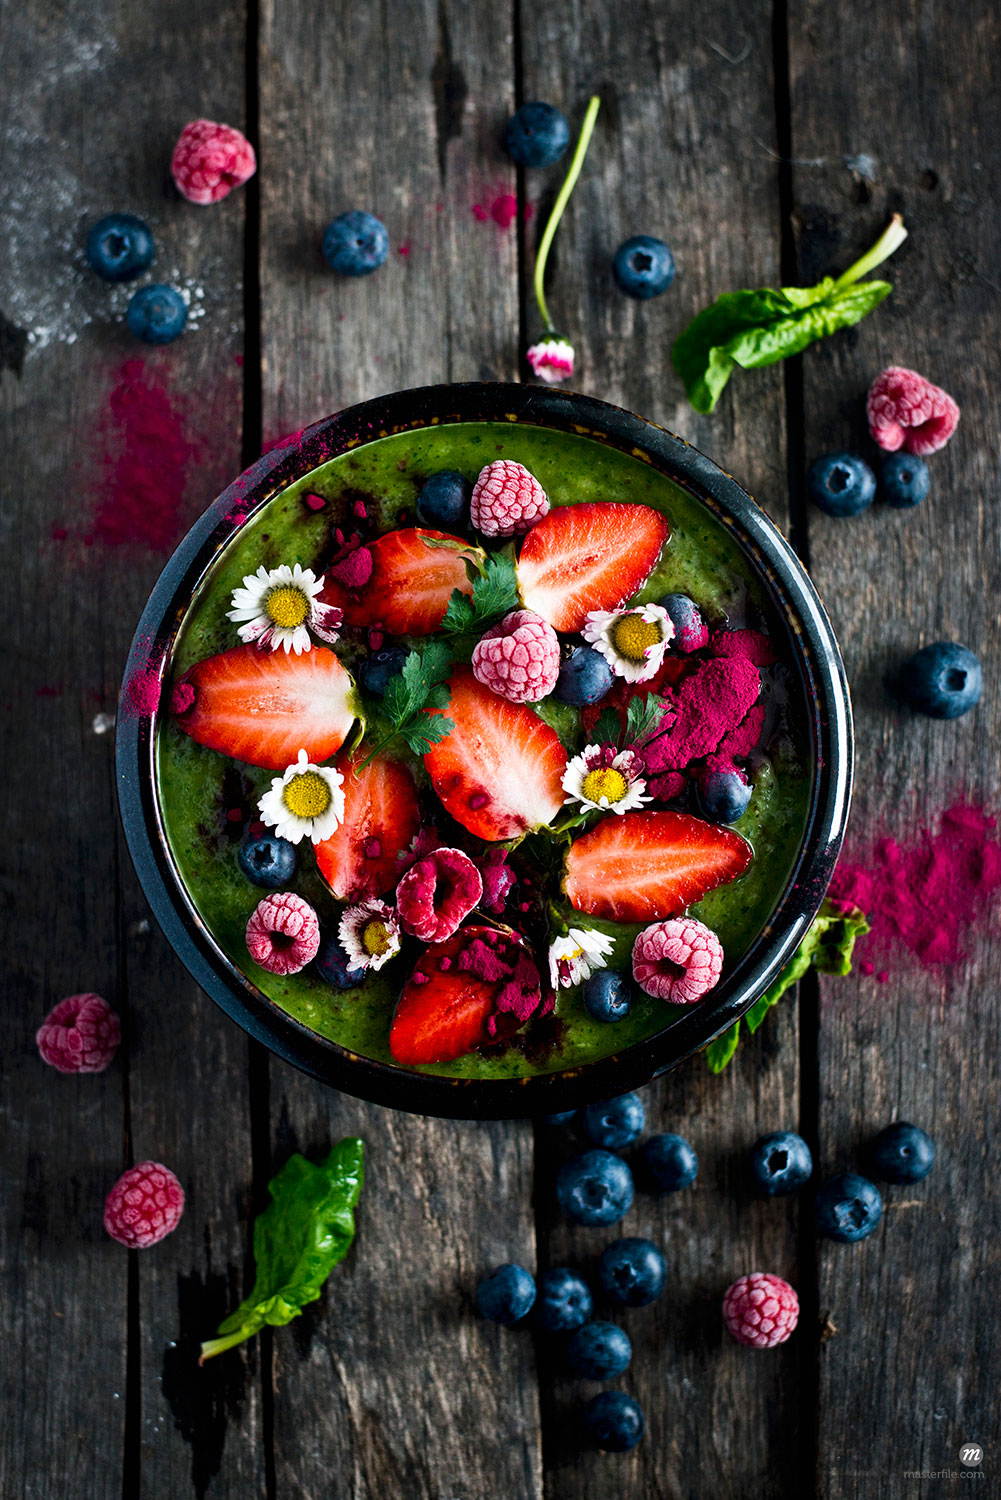 Green smoothie bowl with fresh fruits  © Masterfile